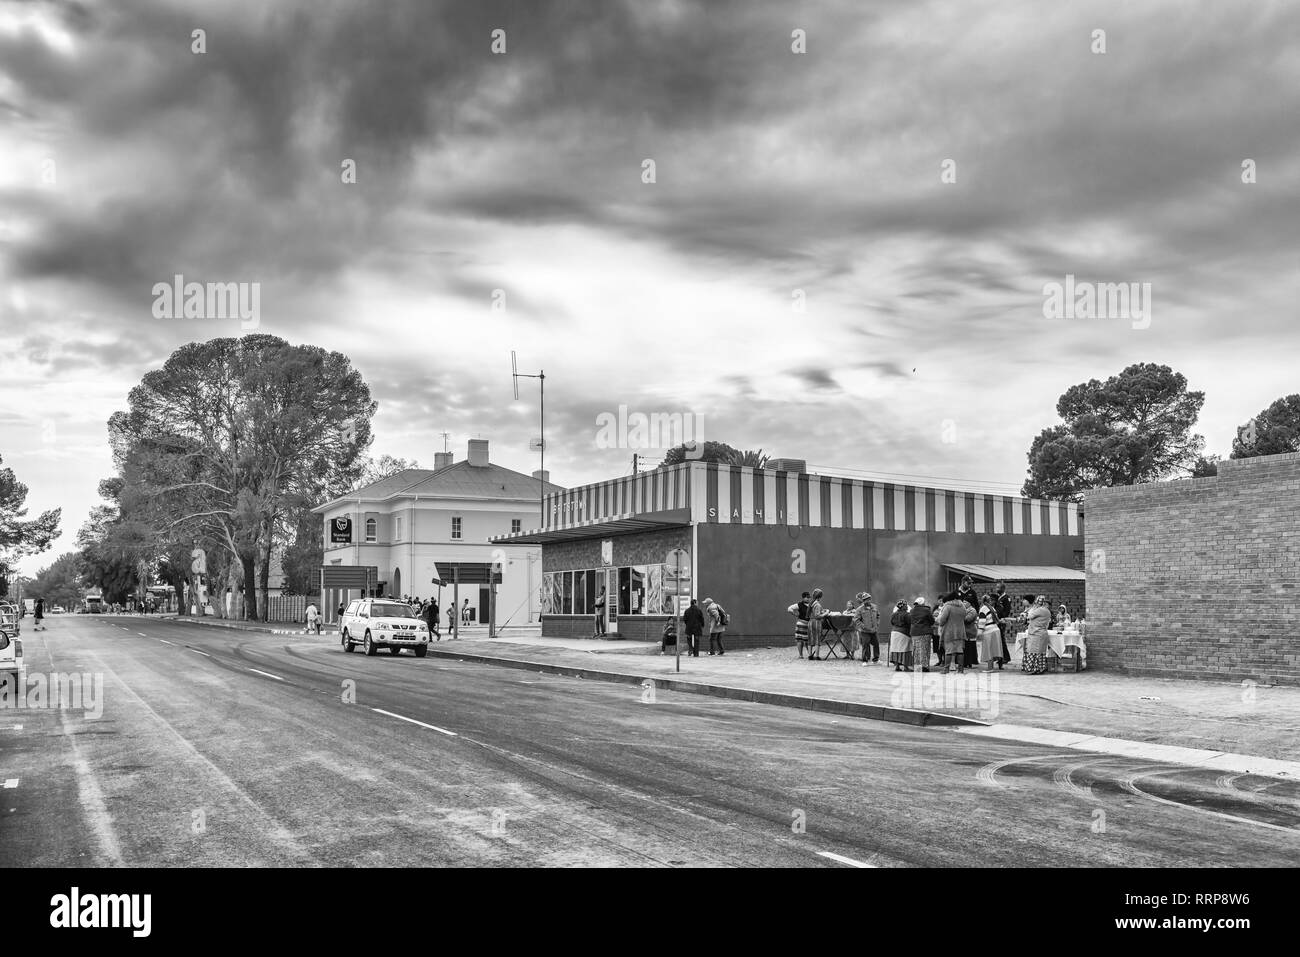 BRITSTOWN, SOUTH AFRICA, SEPTEMBER 1, 2018: A street scene, with businesses, people and vehicles, in Britstown in the Northern Cape Province. Monochro - Stock Image